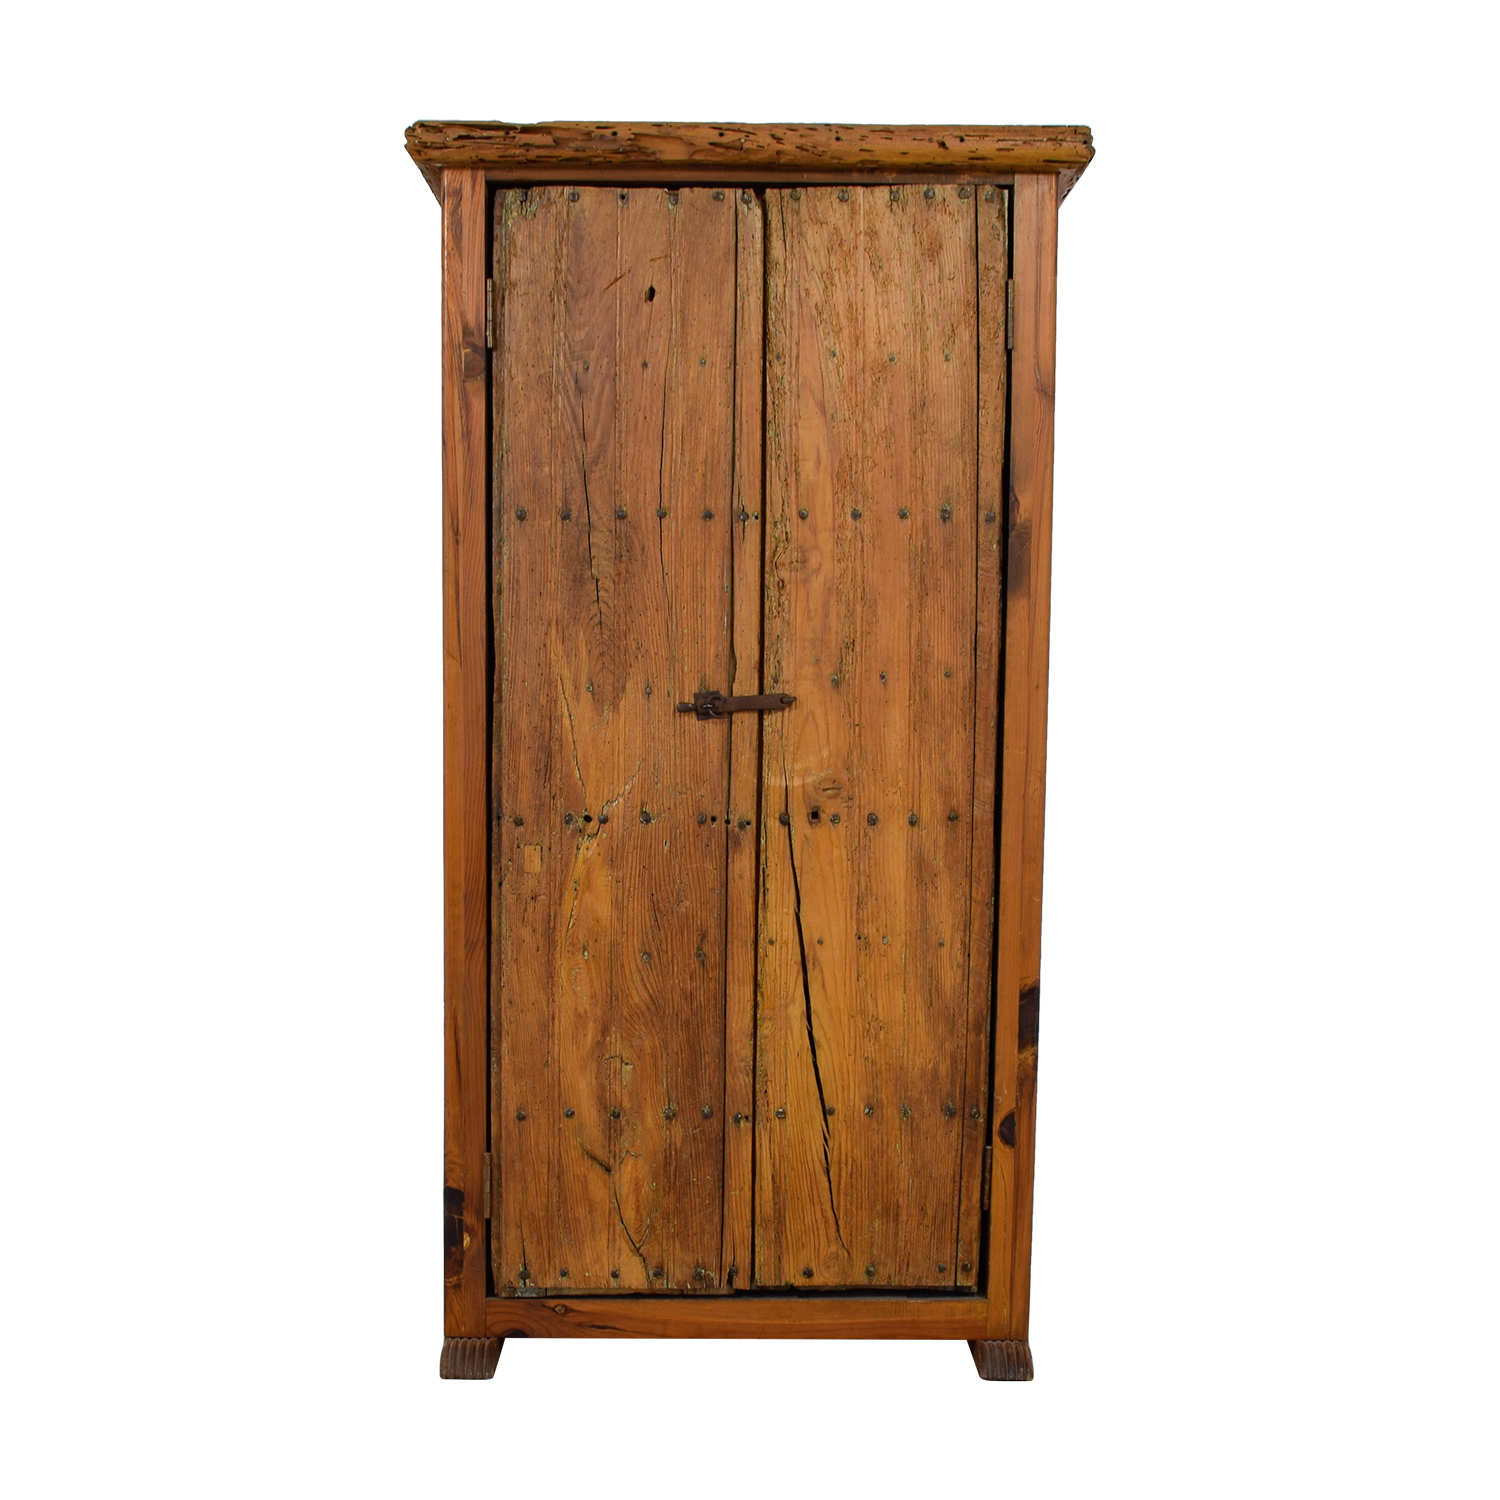 ABC Home & Carpet Authentic Mexican Rustic Barn Wood Armoire / Storage